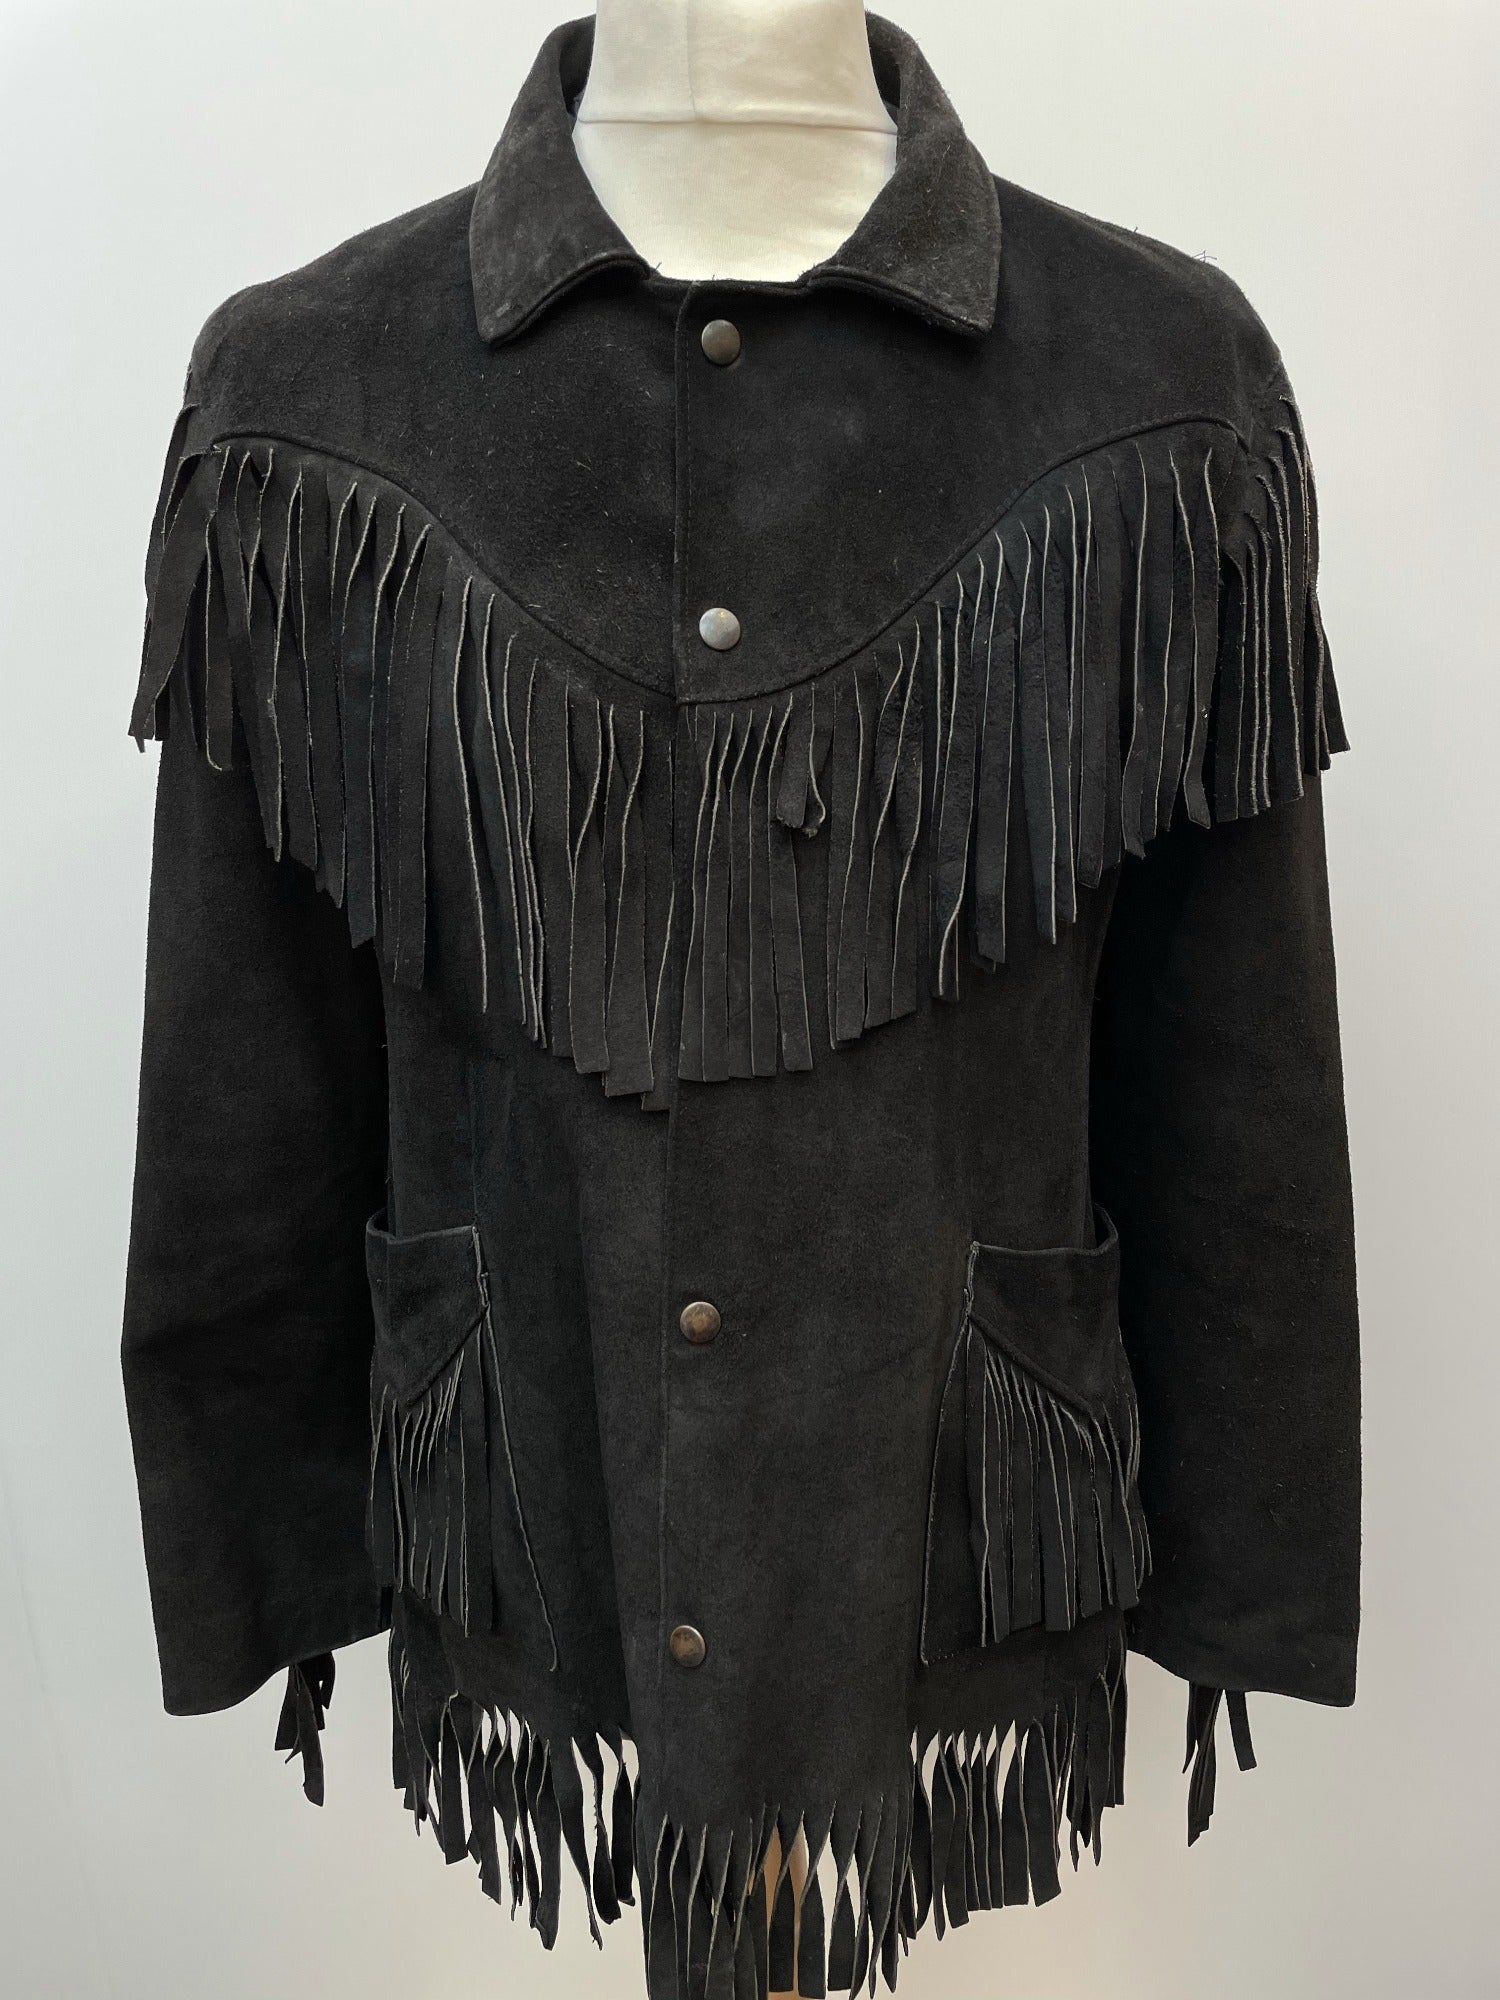 western  vintage  Urban Village Vintage  tasselled  tassel  Suede Jacket  Suede  S  press stud fastening  mens  Jacket  fringed  fringe  Cowboy Shirt  button down  black velvet collar  Black Jacket  black  70s  70  1970s